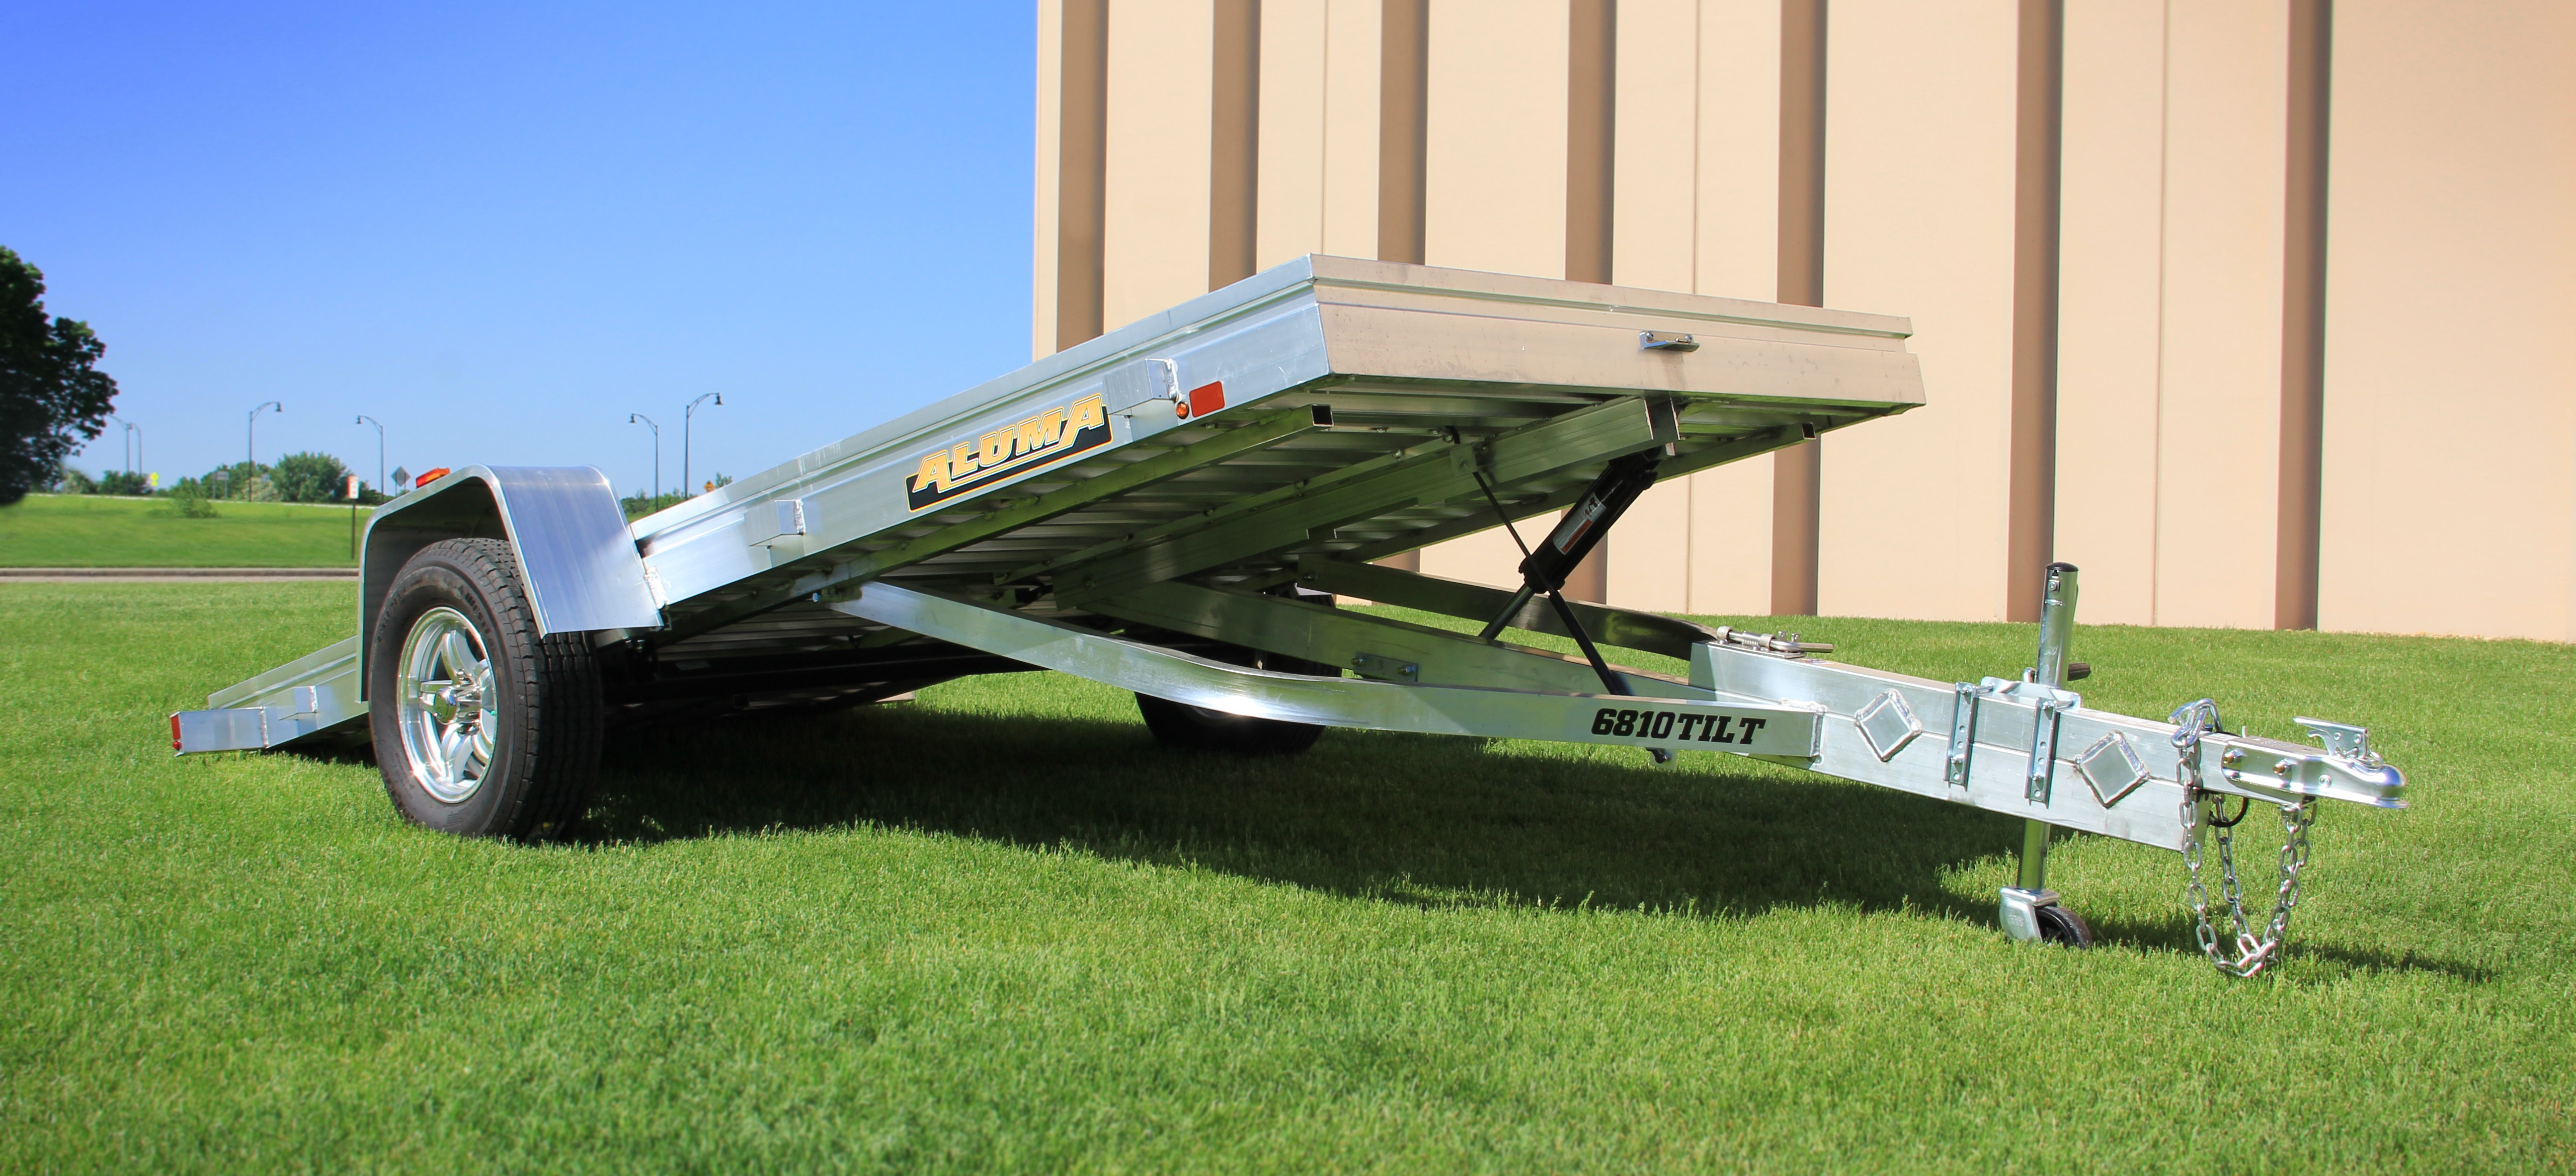 Single Axle Trailers Aluma Trailer Wiring Diagram On Applications Small Boat Or Utility 6810t